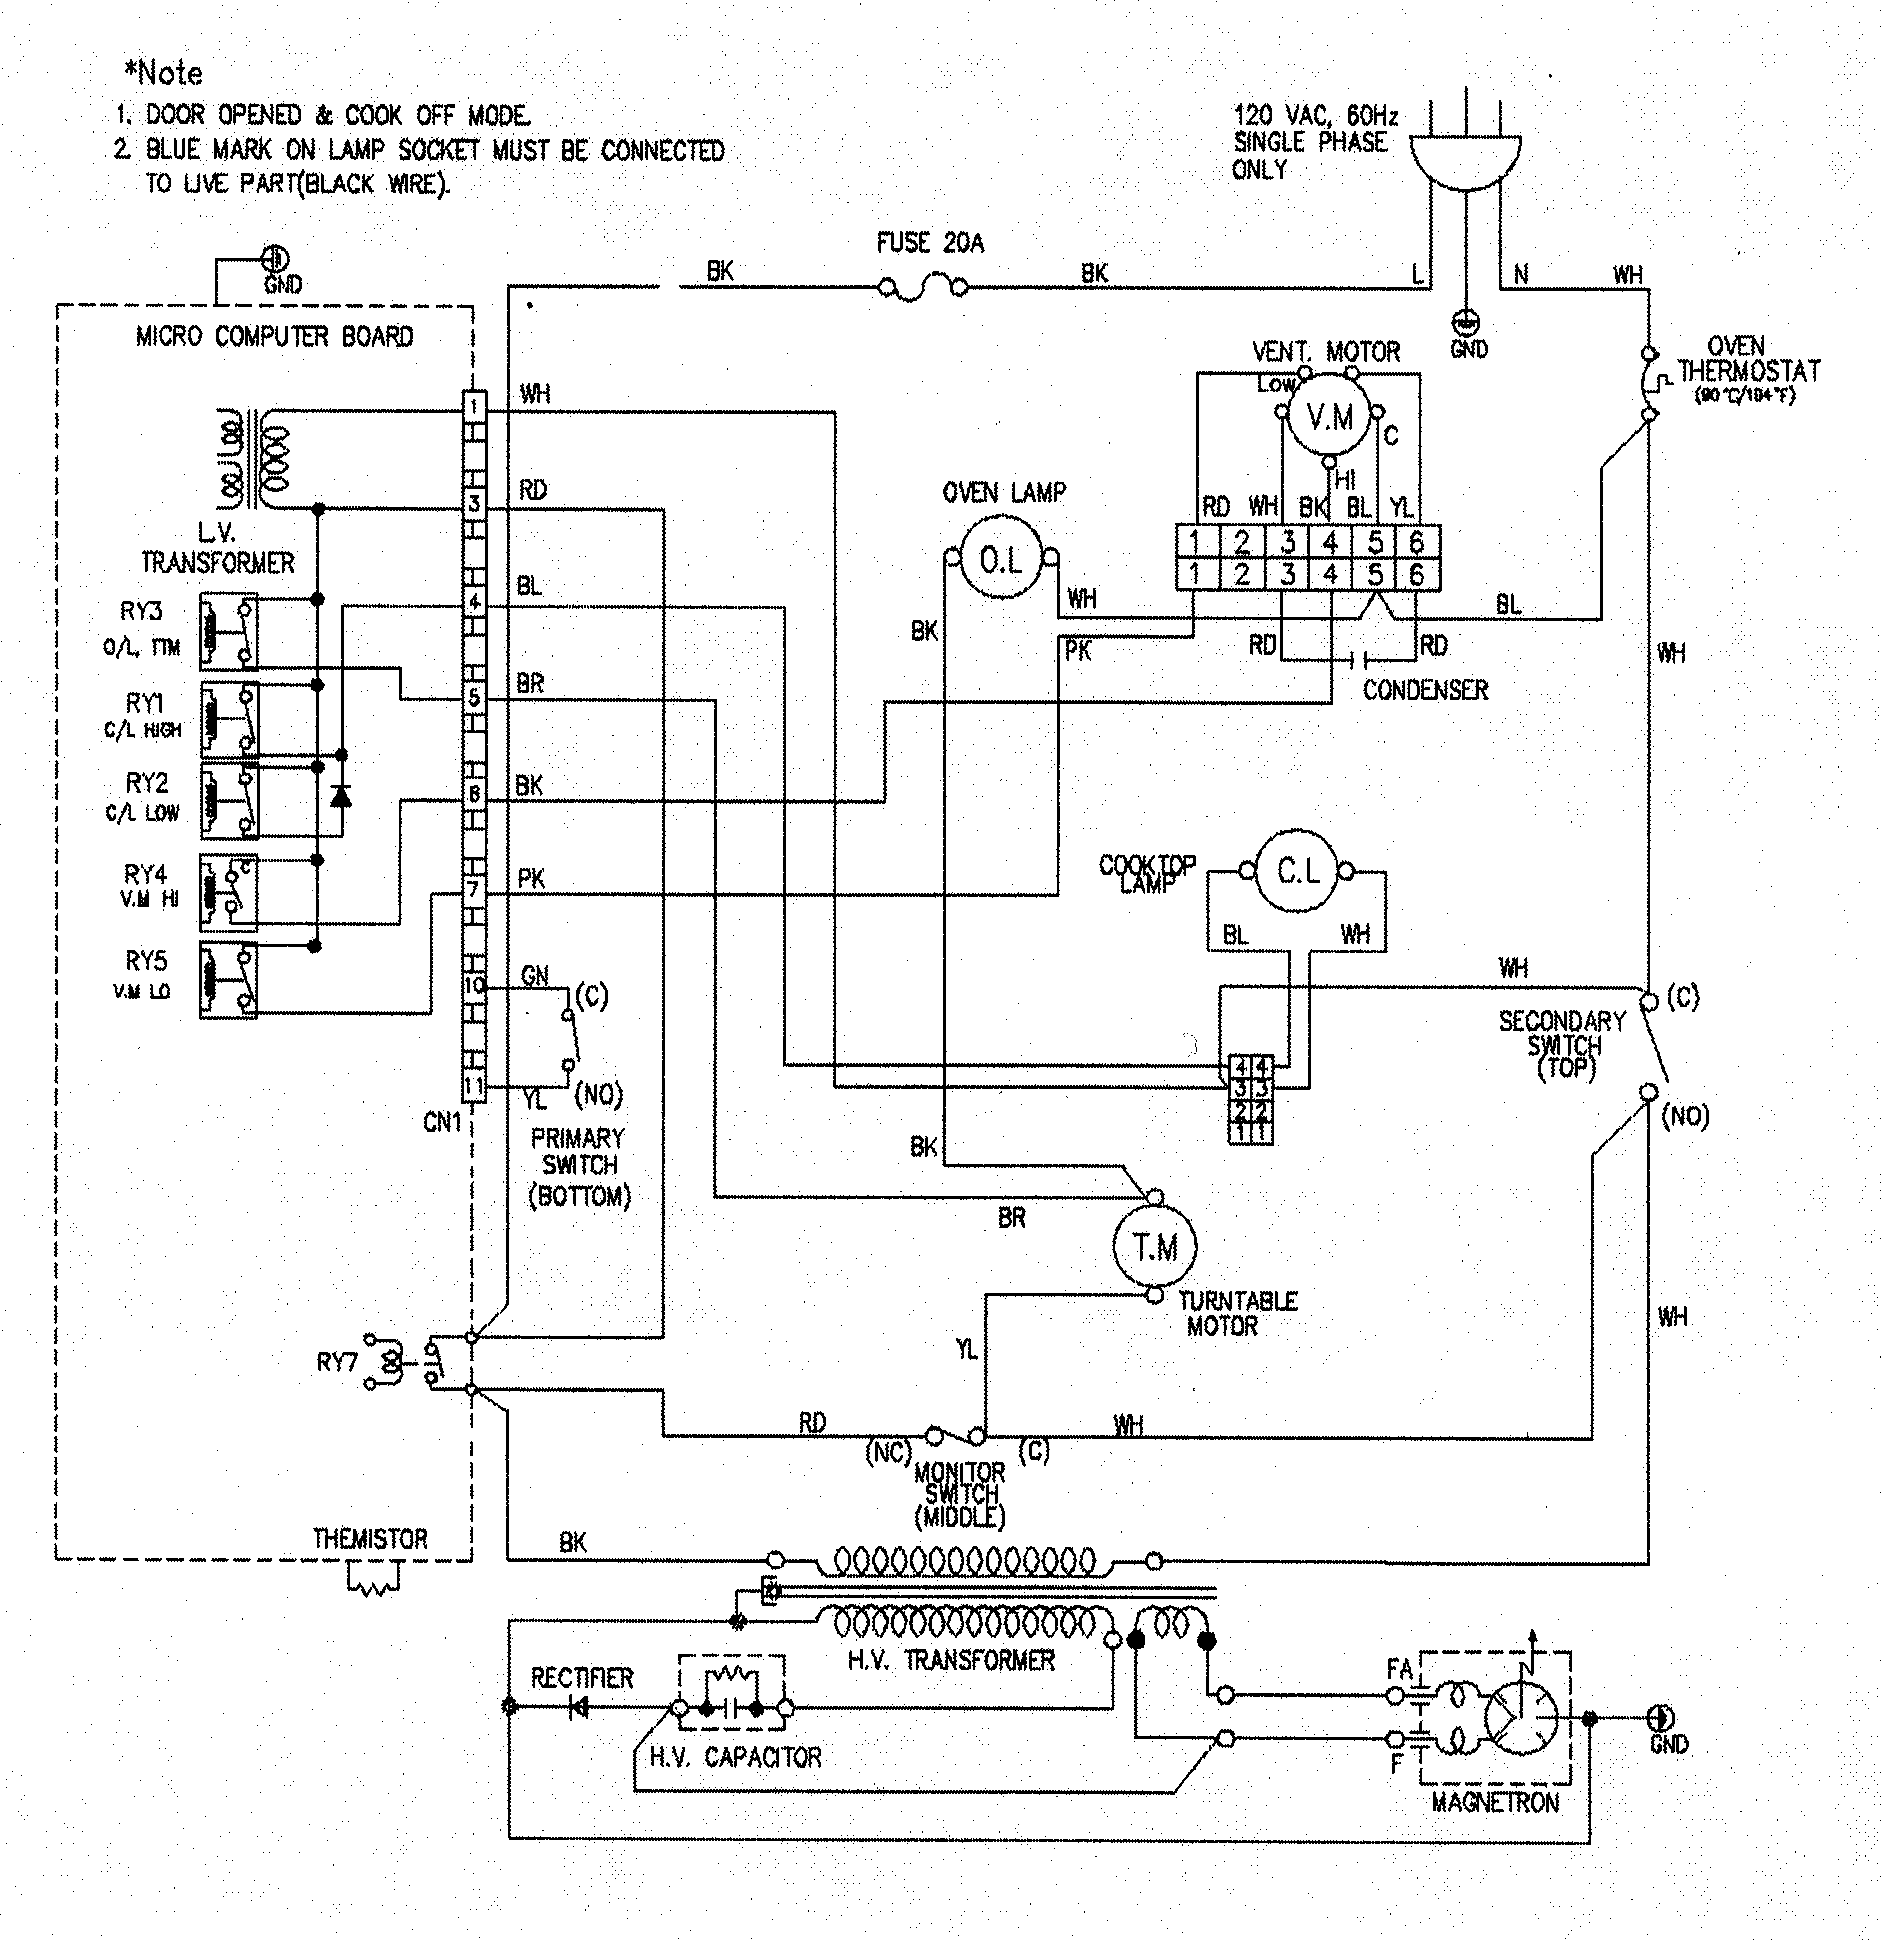 DIAGRAM] For Schematic Oven Diagram Wiring Ge Jkp13gp3 FULL Version HD  Quality Ge Jkp13gp3 - DIAGRAMINGCO.PICCIBLOG.IT | Ge Schematic Diagrams |  | Diagram Database - picciblog.it